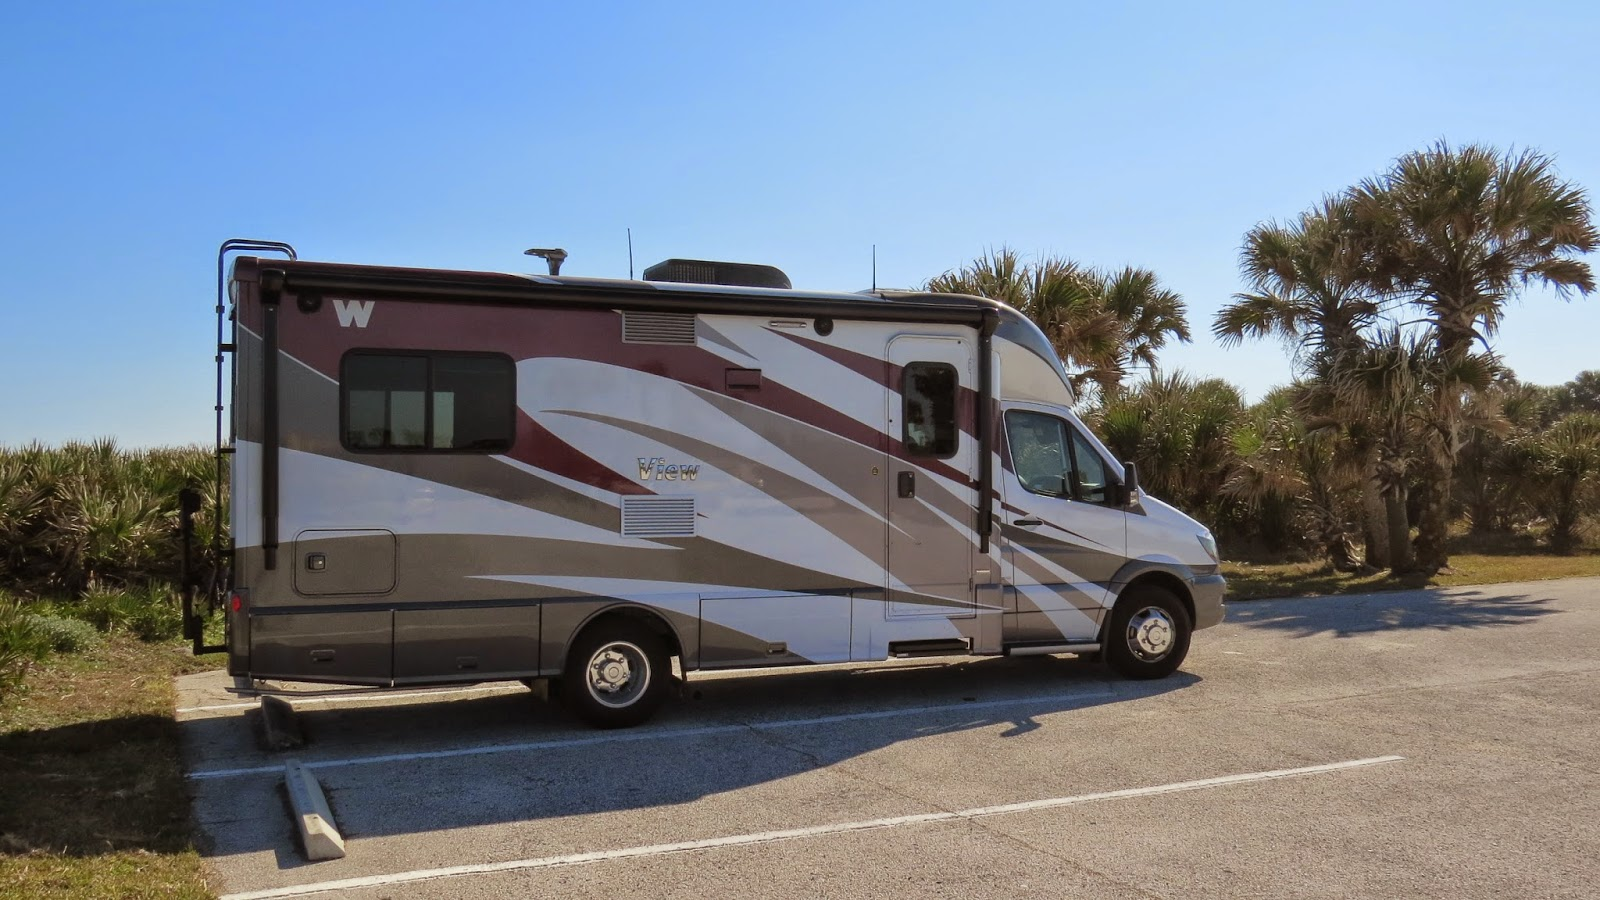 Going from a Type B to a Type C: A Small Motorhome